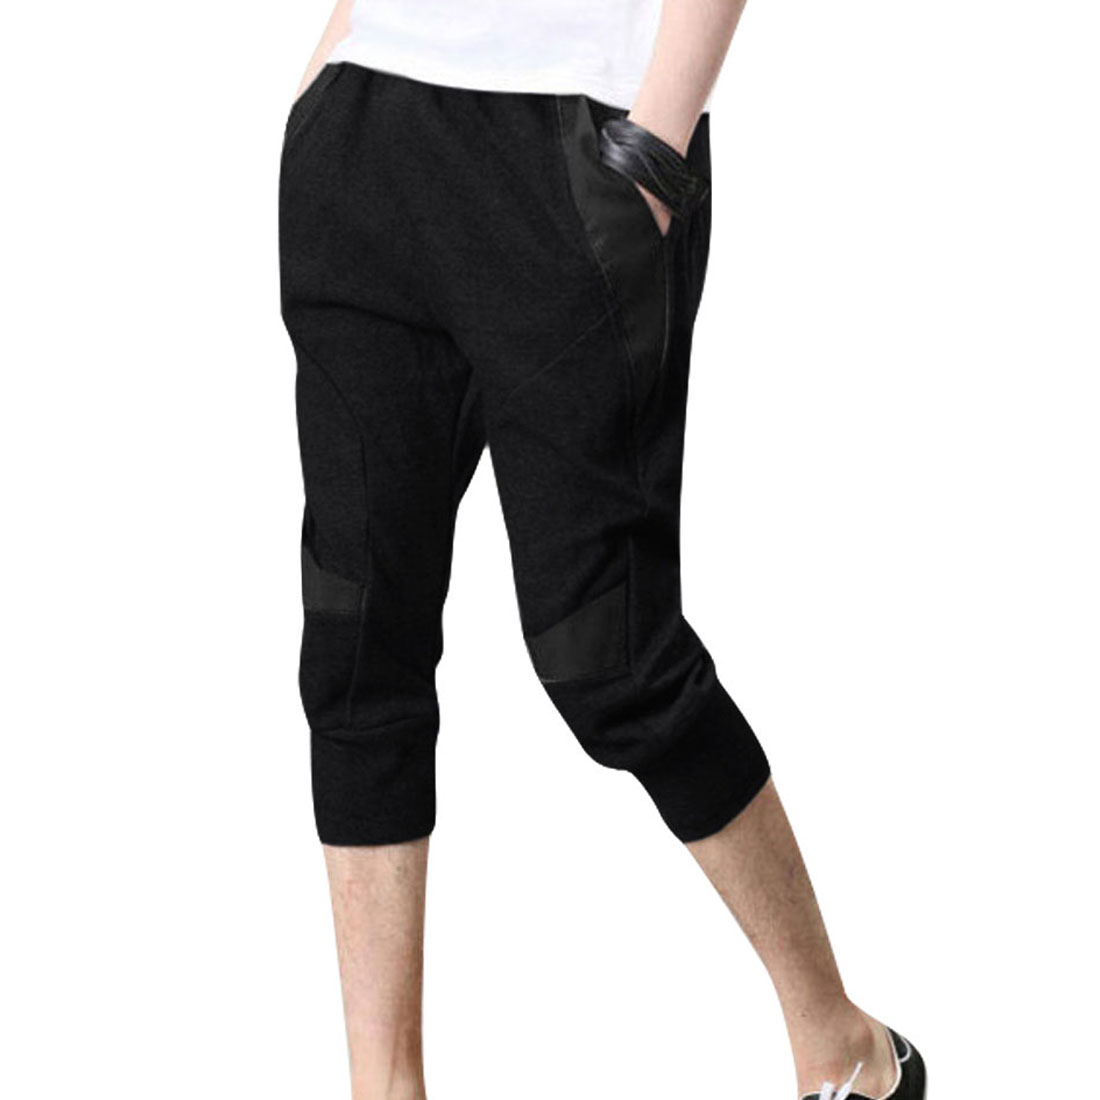 Men Drawstring Waist Splice Capris Pants Black W30